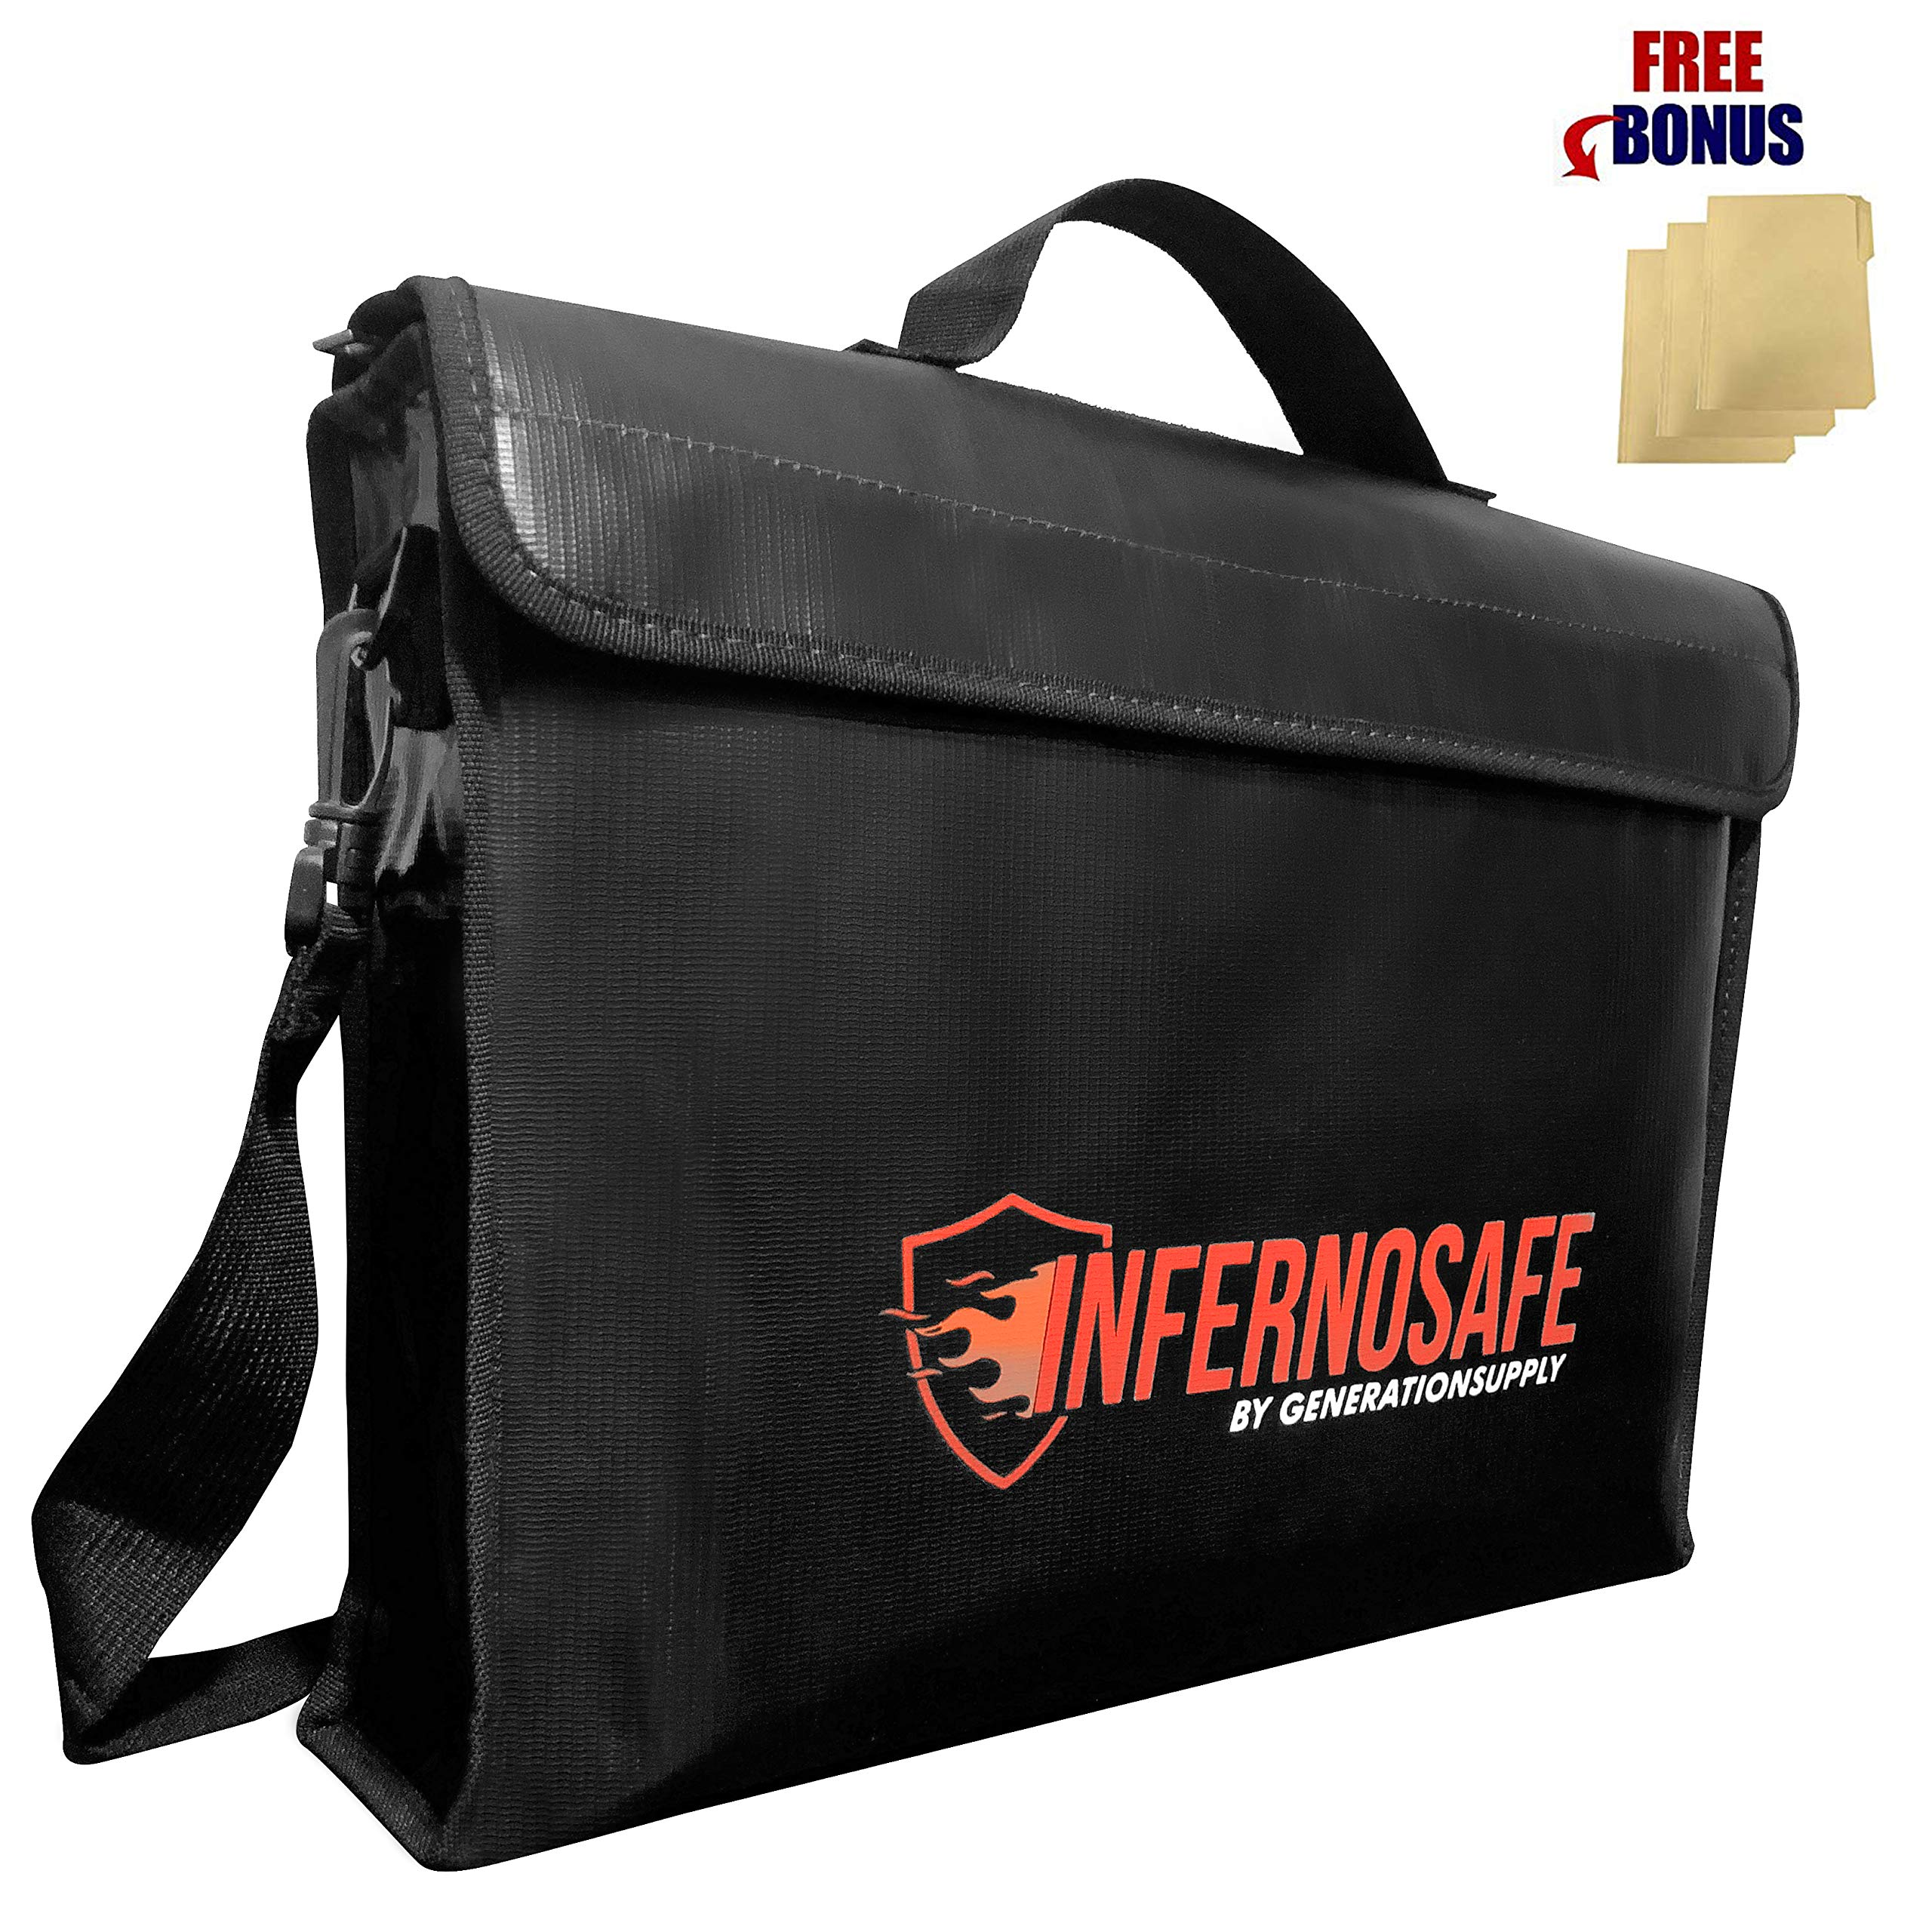 Fireproof Document Bag Waterproof w/Shoulder Strap & File Folders, Fire Resistant Safe, Non-Itchy Silicon Coated, Heavy Duty Protection for Valuable Documents, Jewelry, Passports, Money